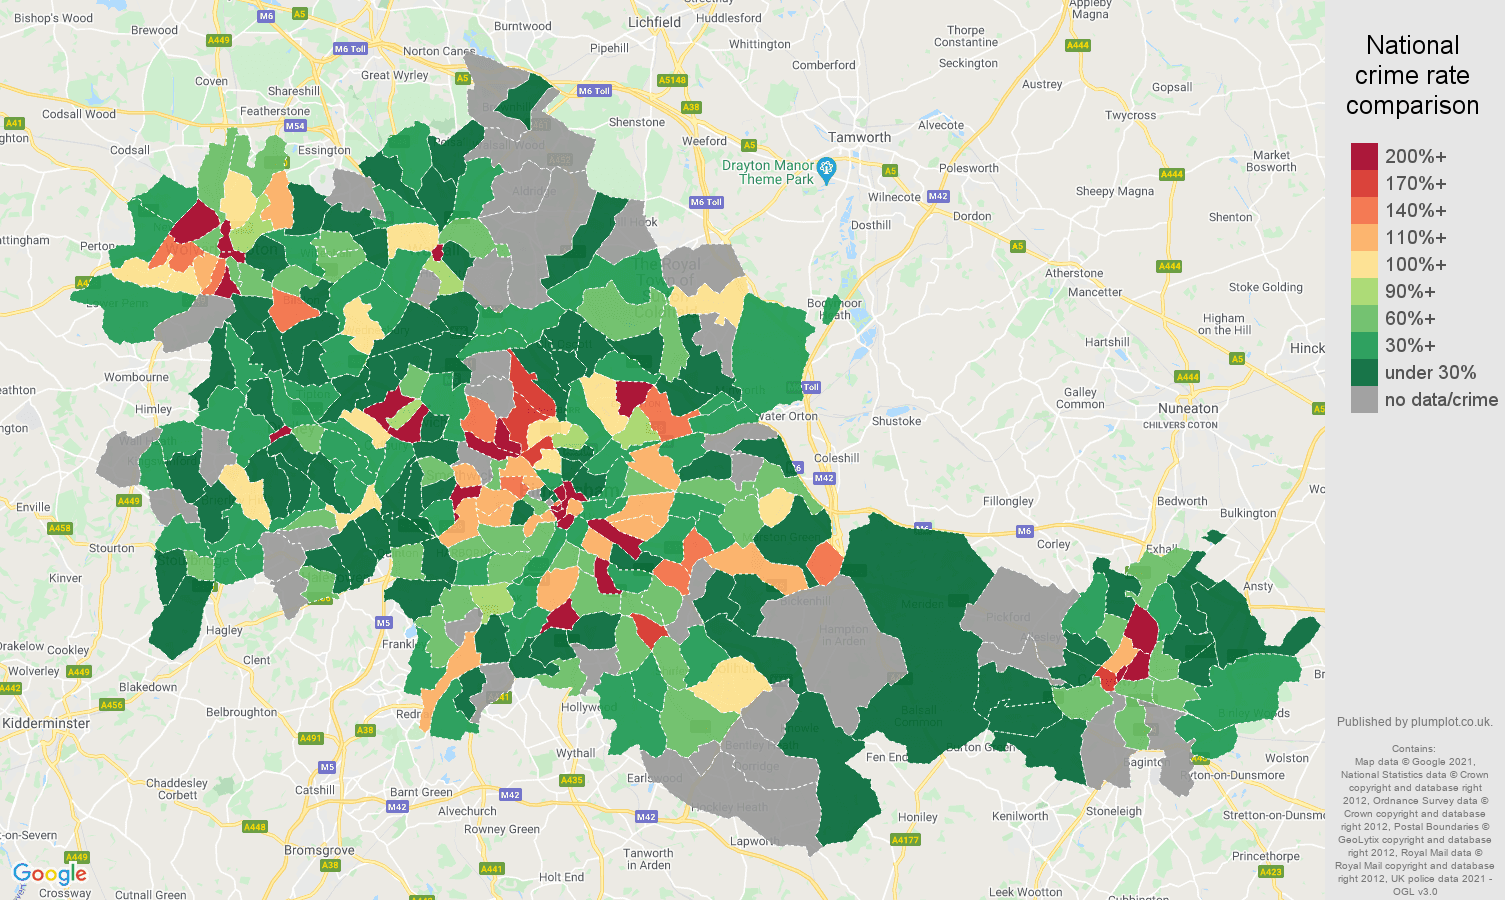 West Midlands county theft from the person crime rate comparison map